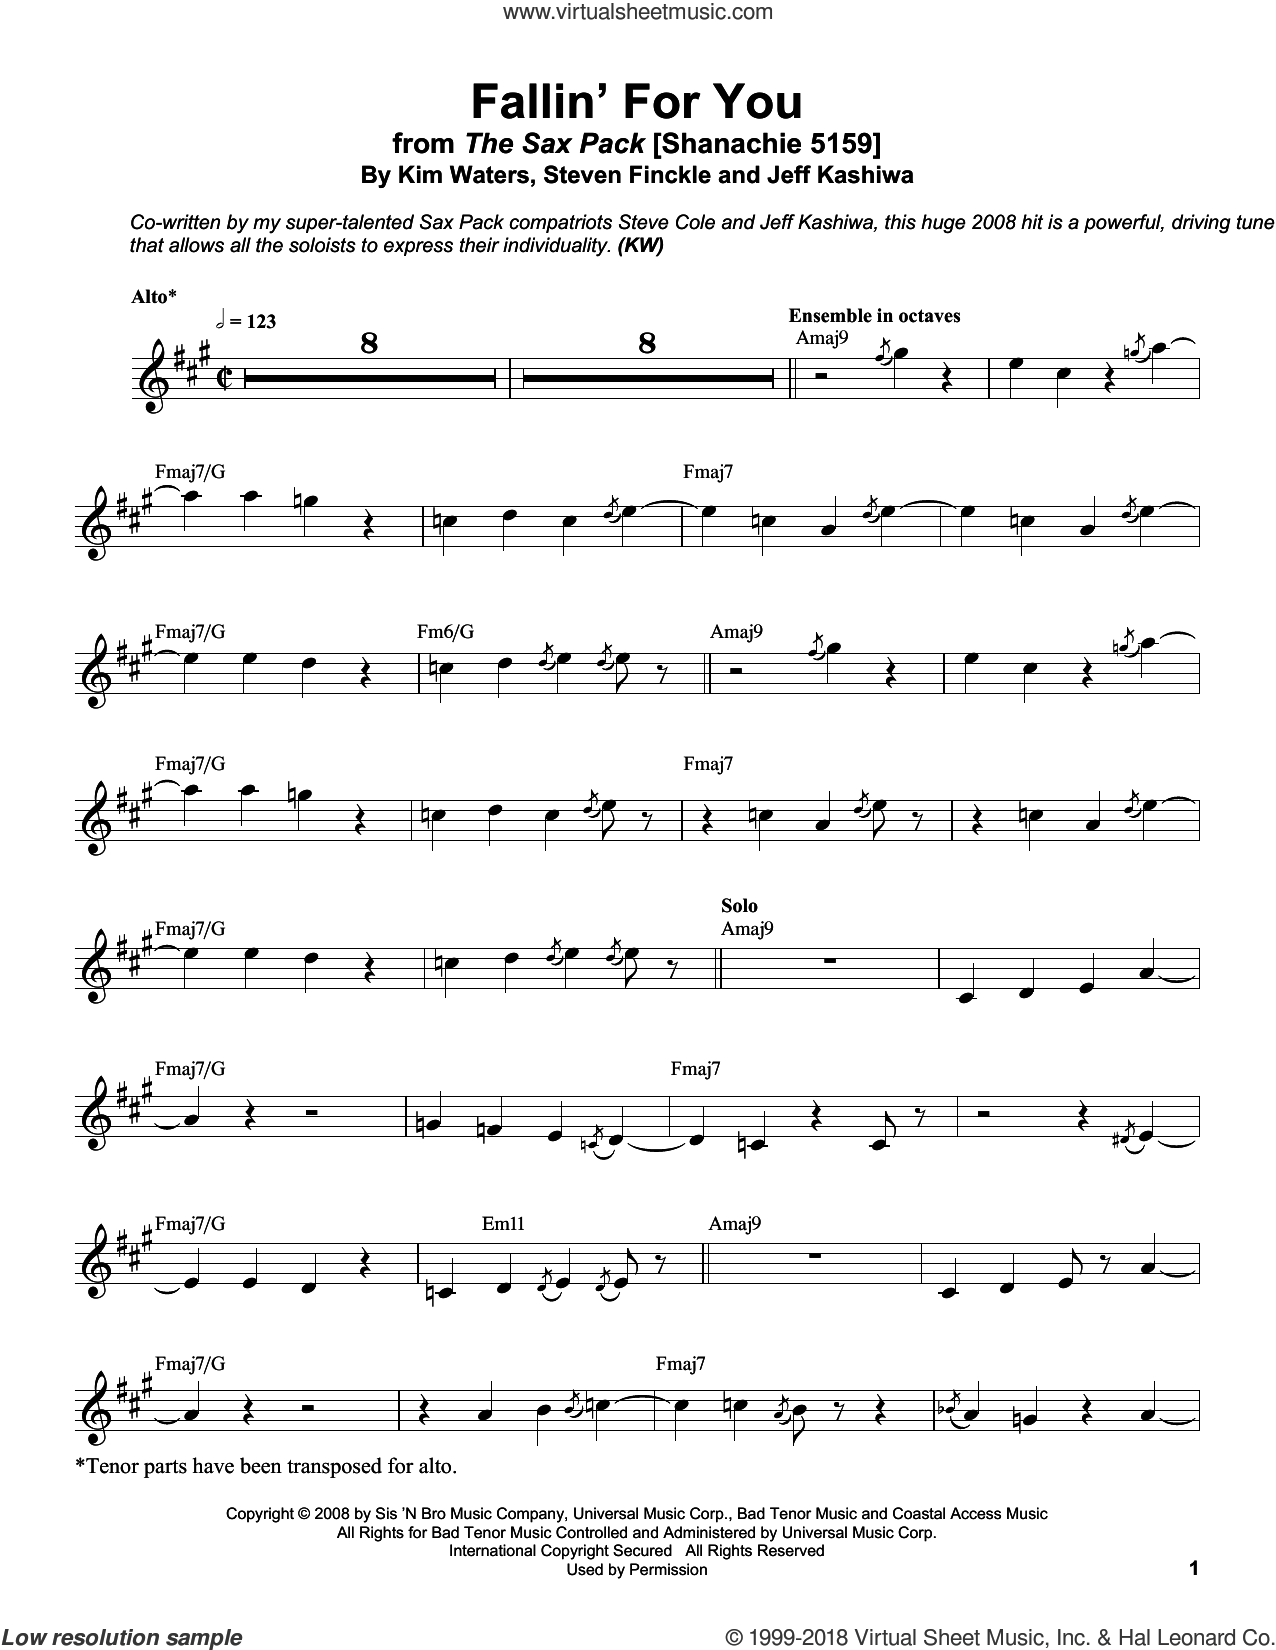 Fallin' For You sheet music for alto saxophone (transcription) by Kim Waters, Jeff Kashiwa and Steven Finckle, intermediate skill level